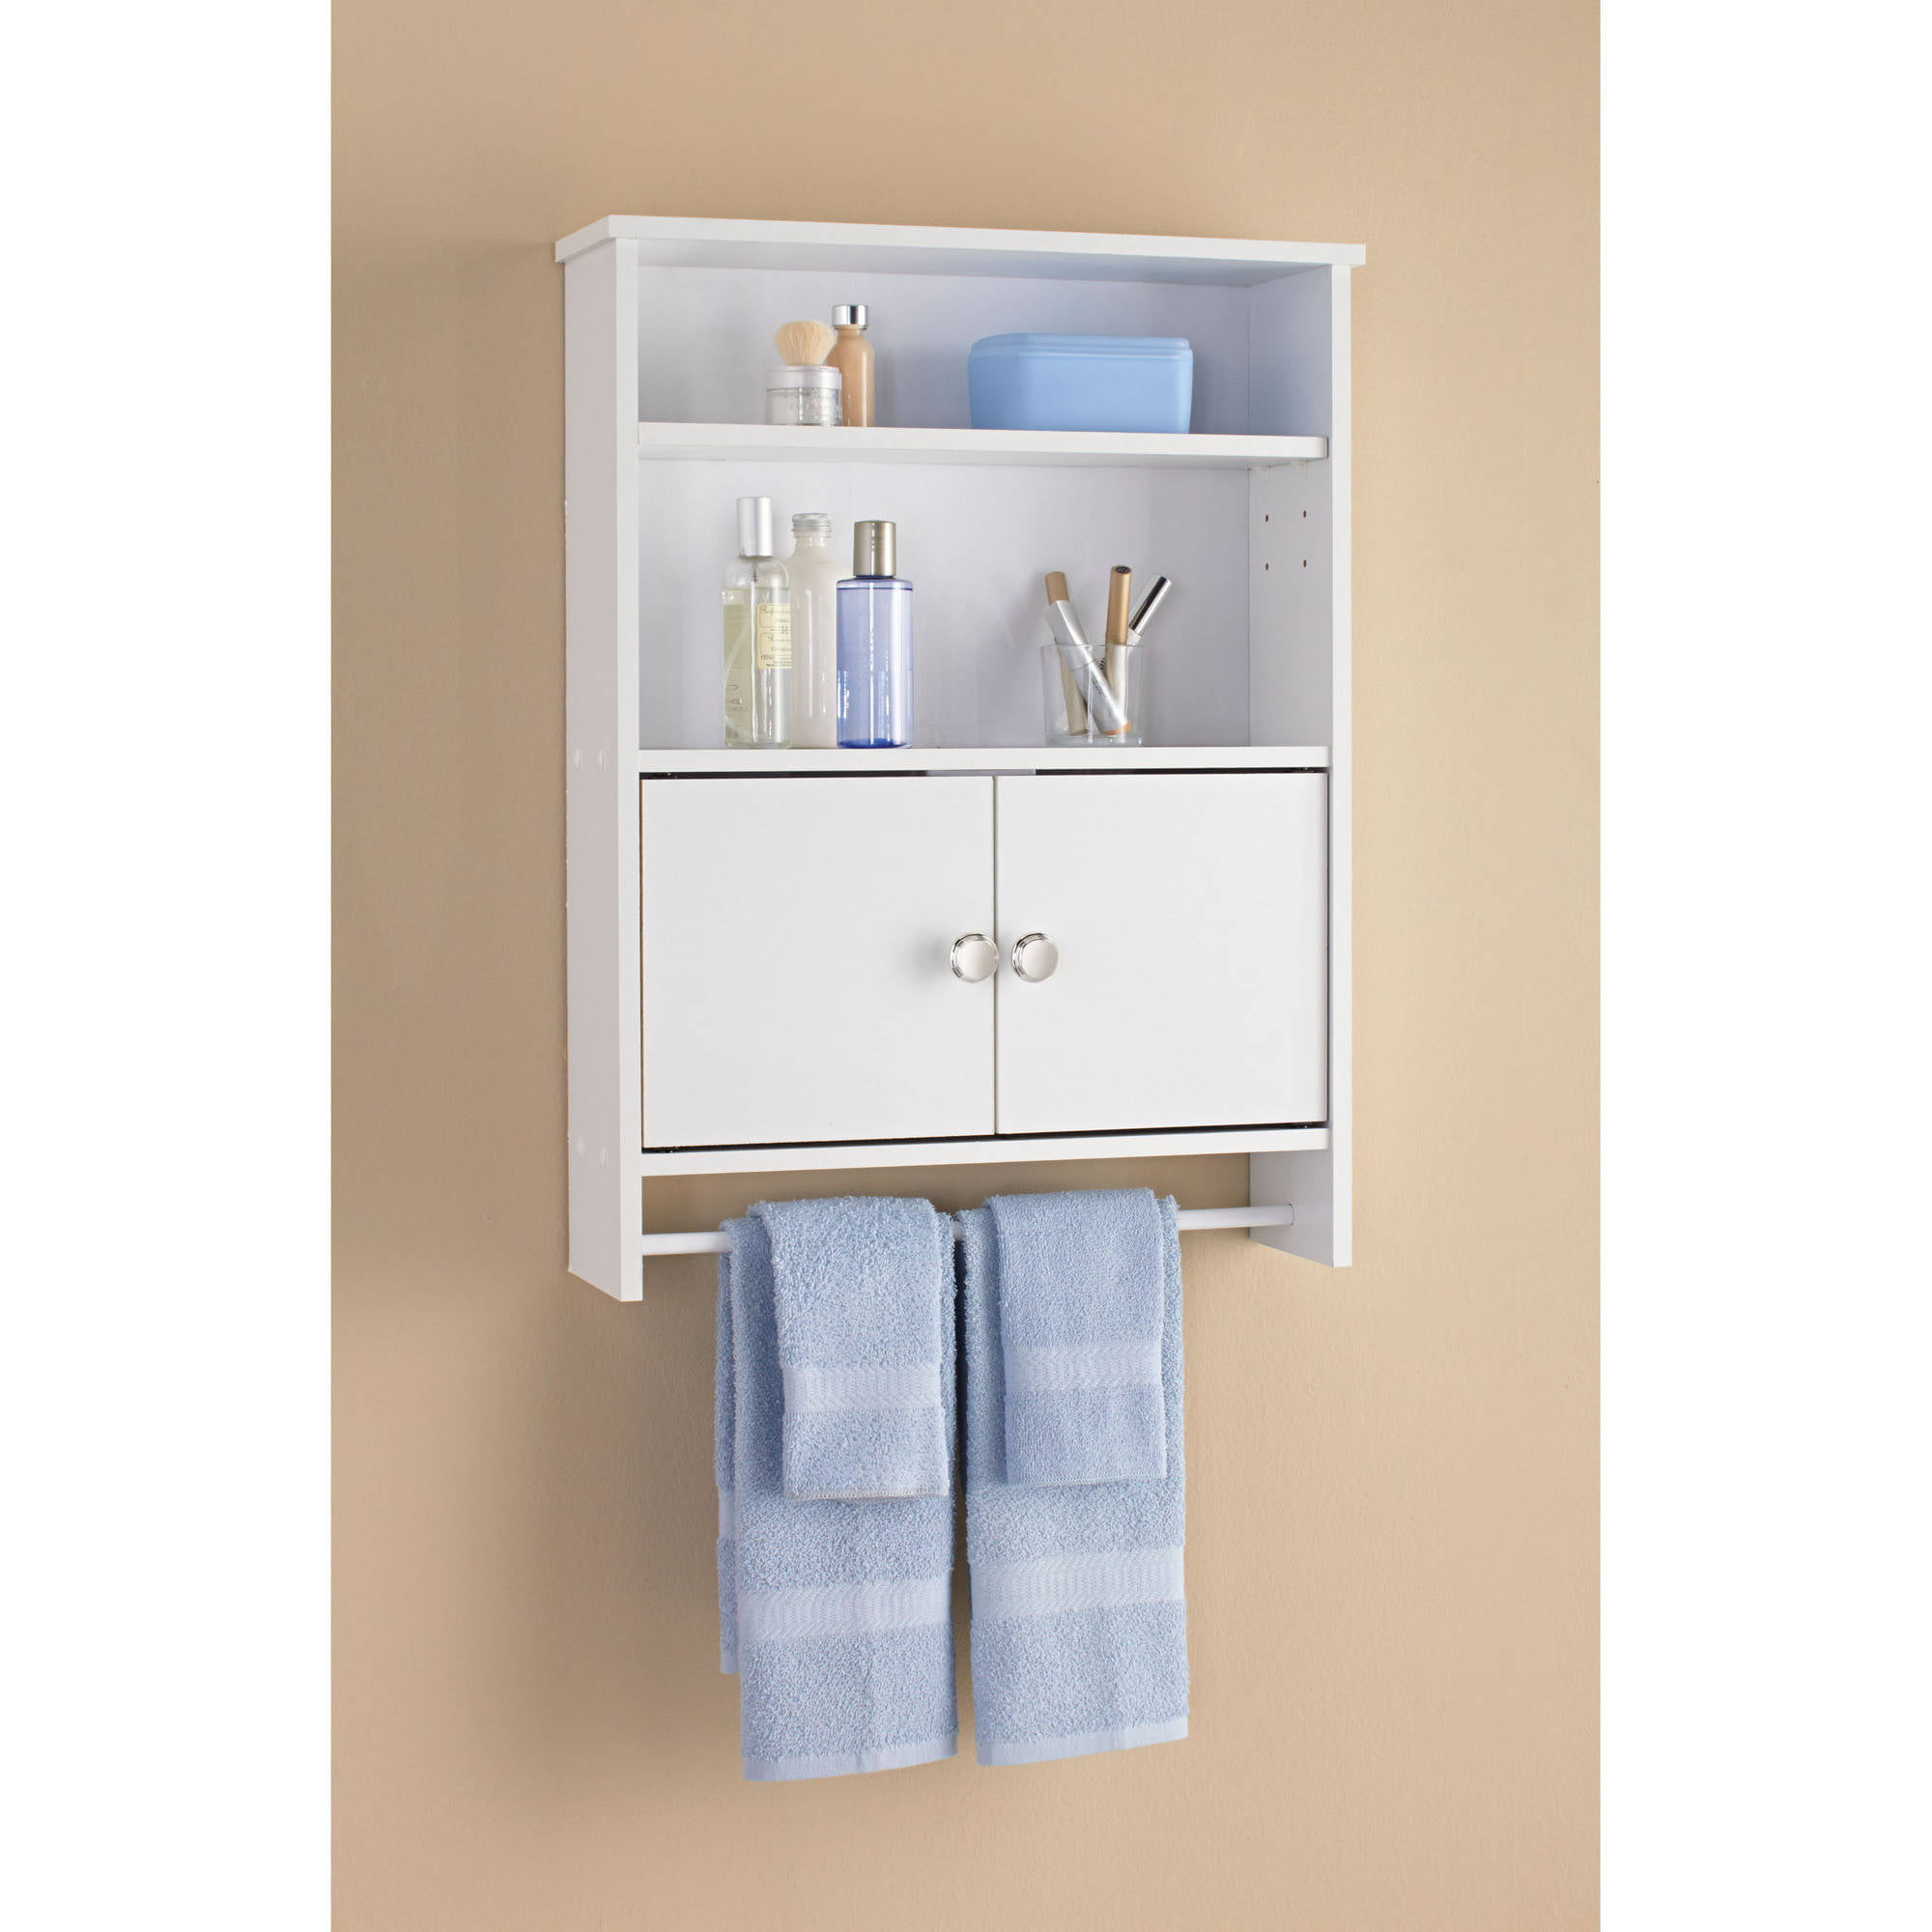 Chapter Bathroom Wall Cabinet, Espresso - Walmart.com